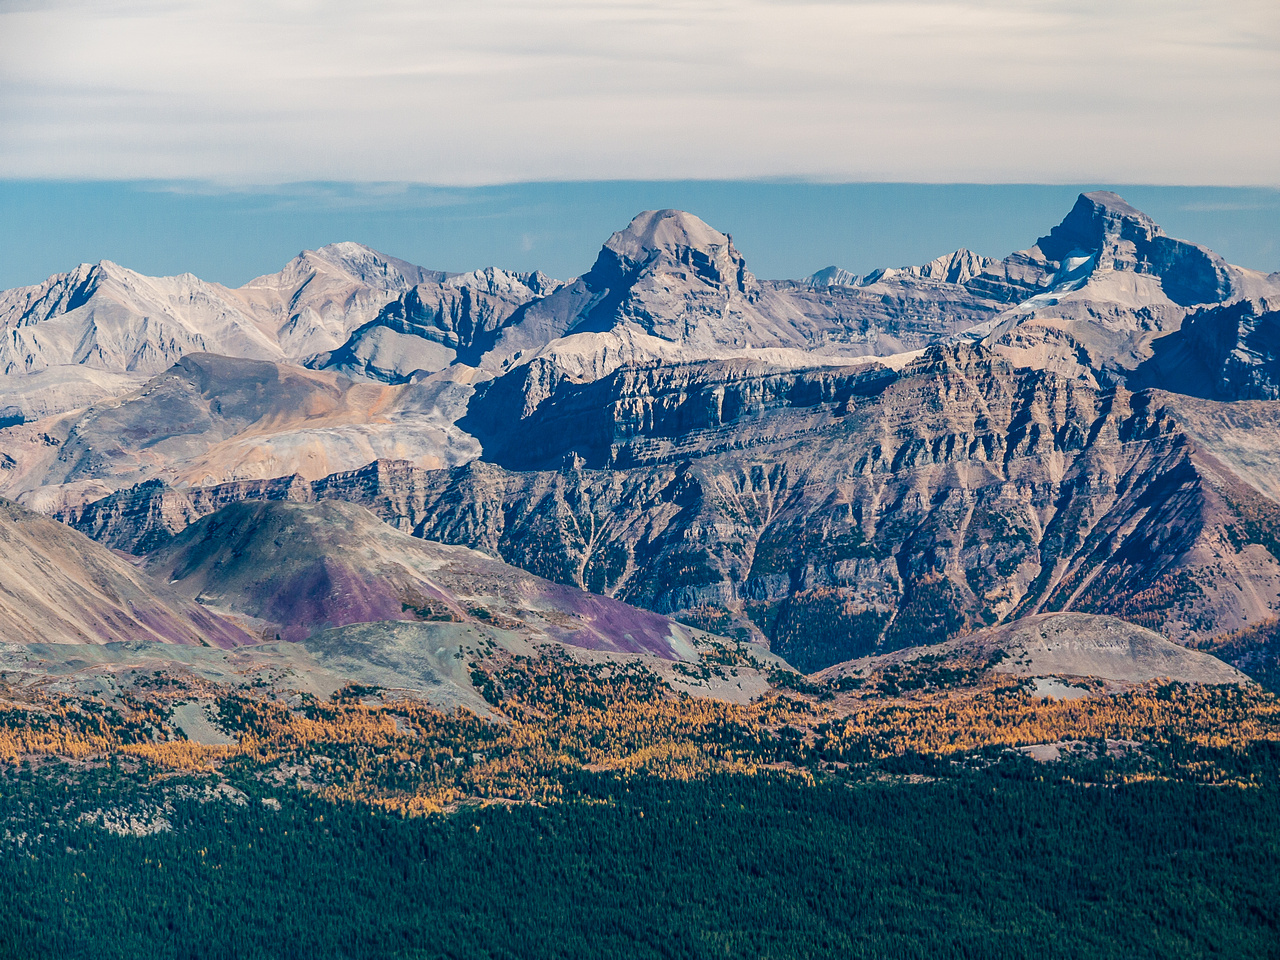 Skoki peaks including Douglas and St. Bride with brightly colored larches and purple scree.